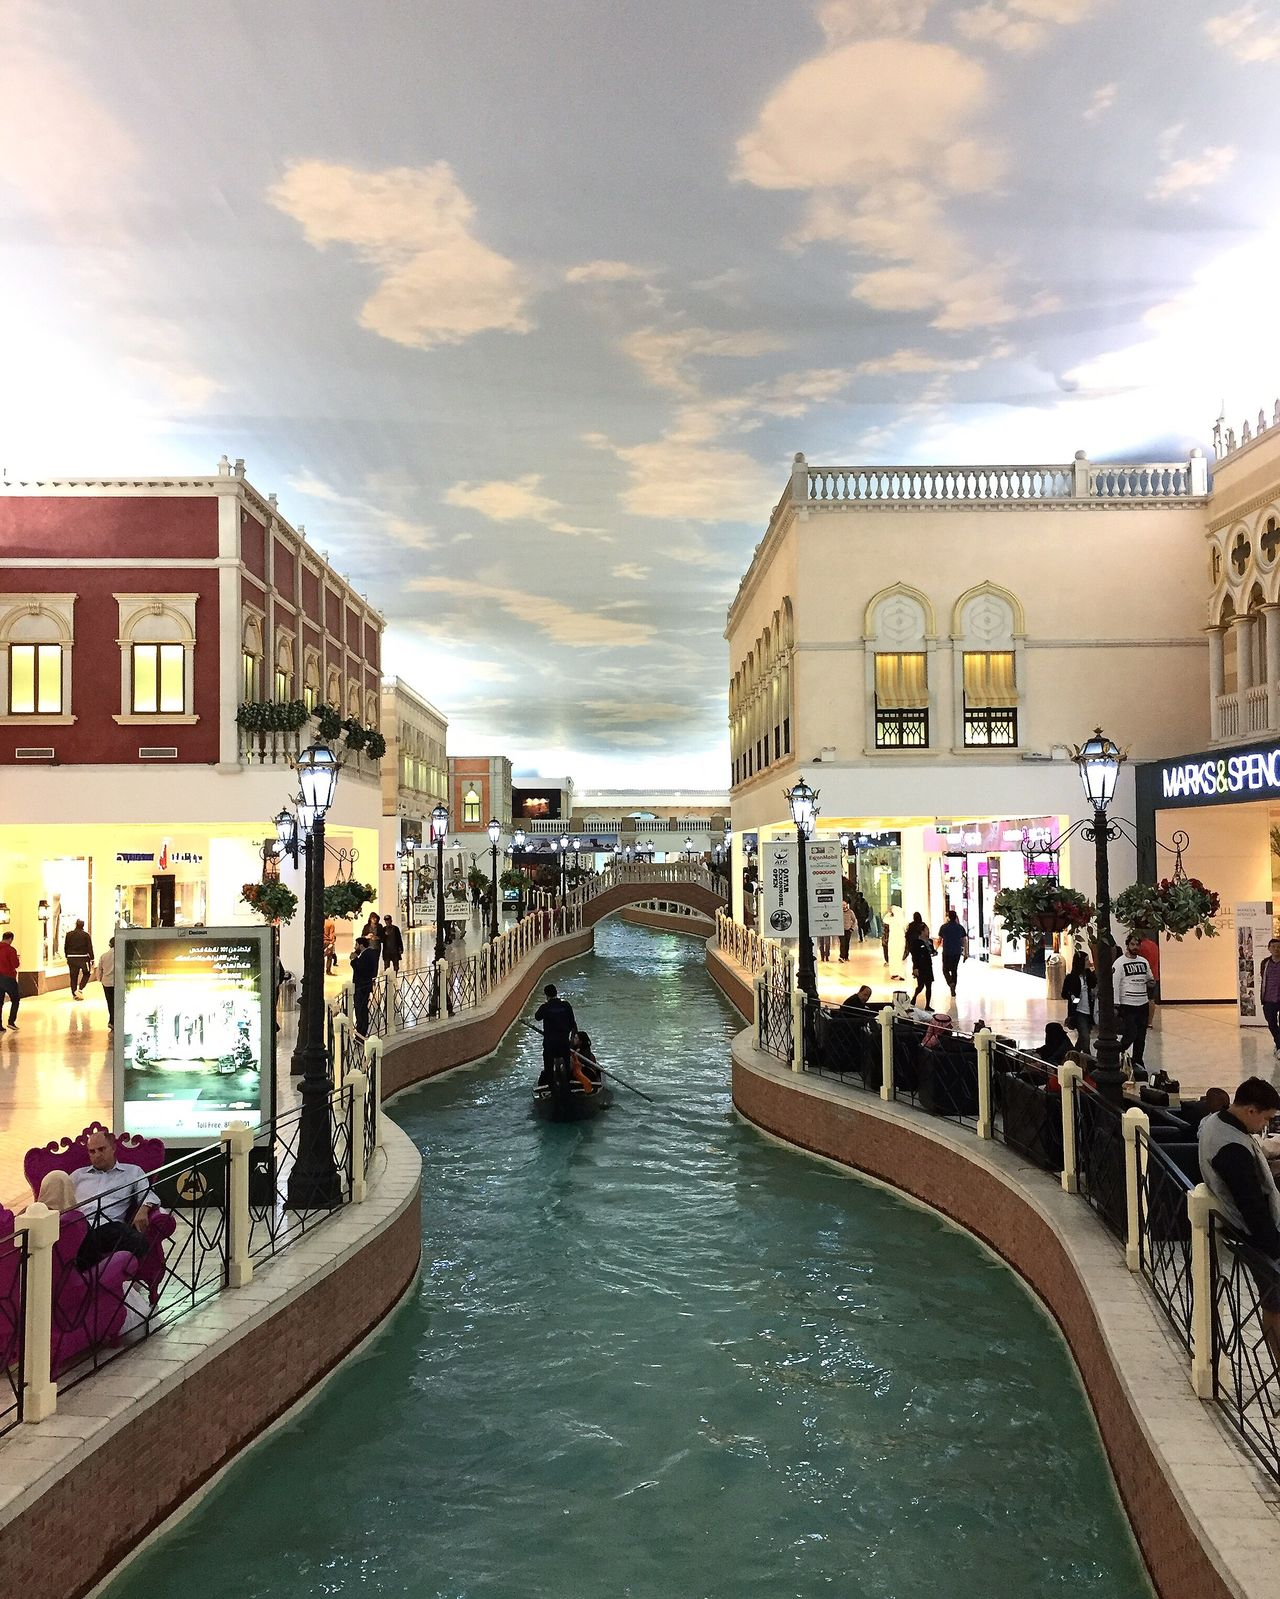 Villagio Architecture Outdoors Building Exterior Built Structure Sky City Canal Water Cloud - Sky Large Group Of People Real People Men Day People